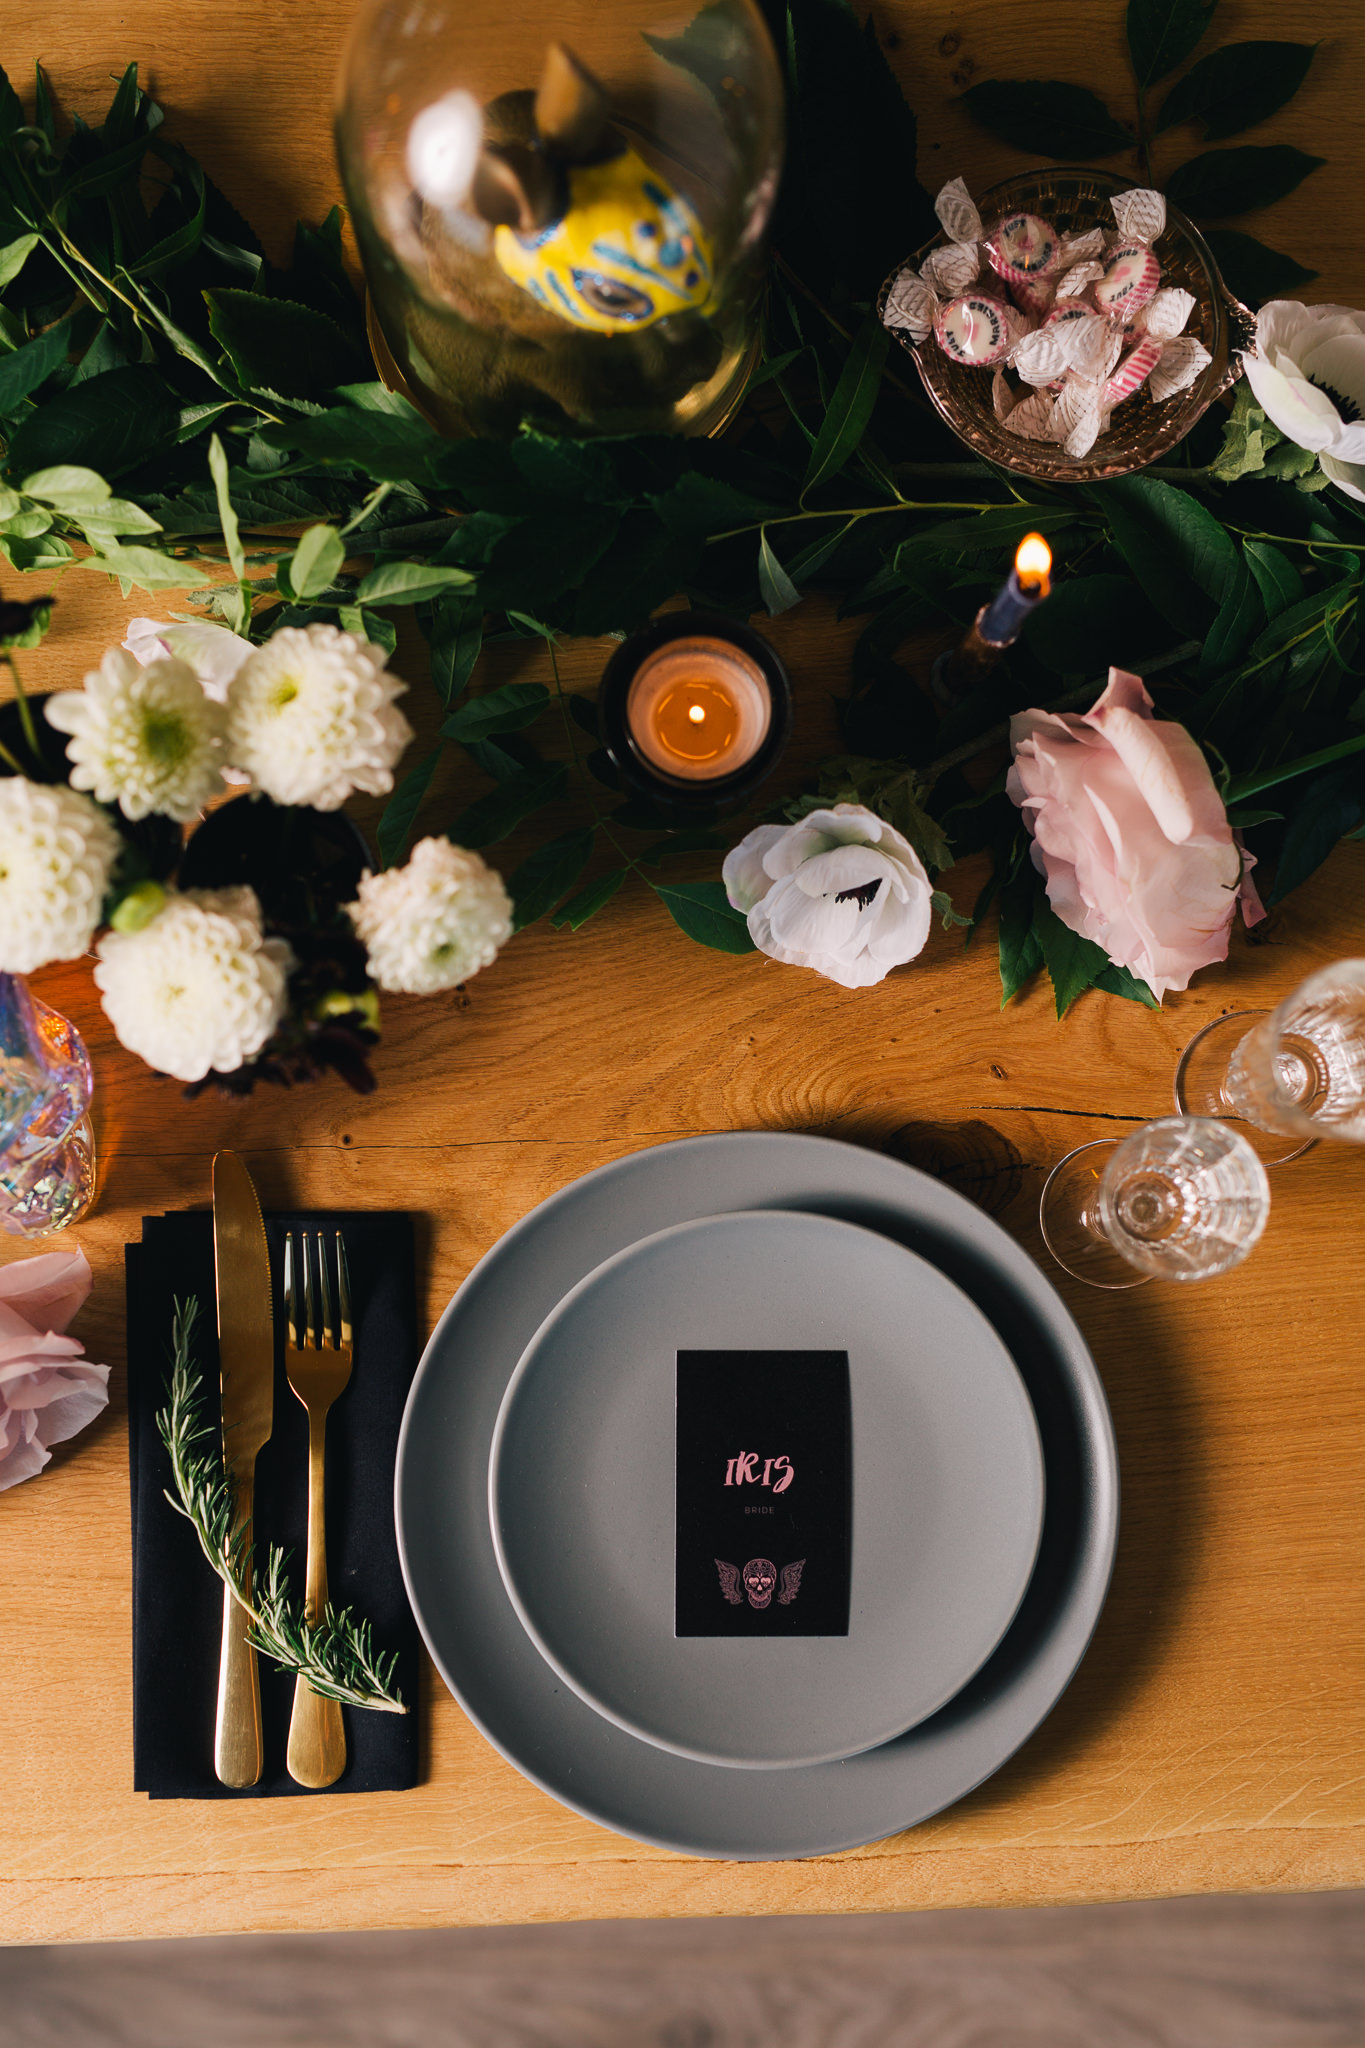 Rock'n'Roll Wedding table setting | Image courtesy of Adj Brown